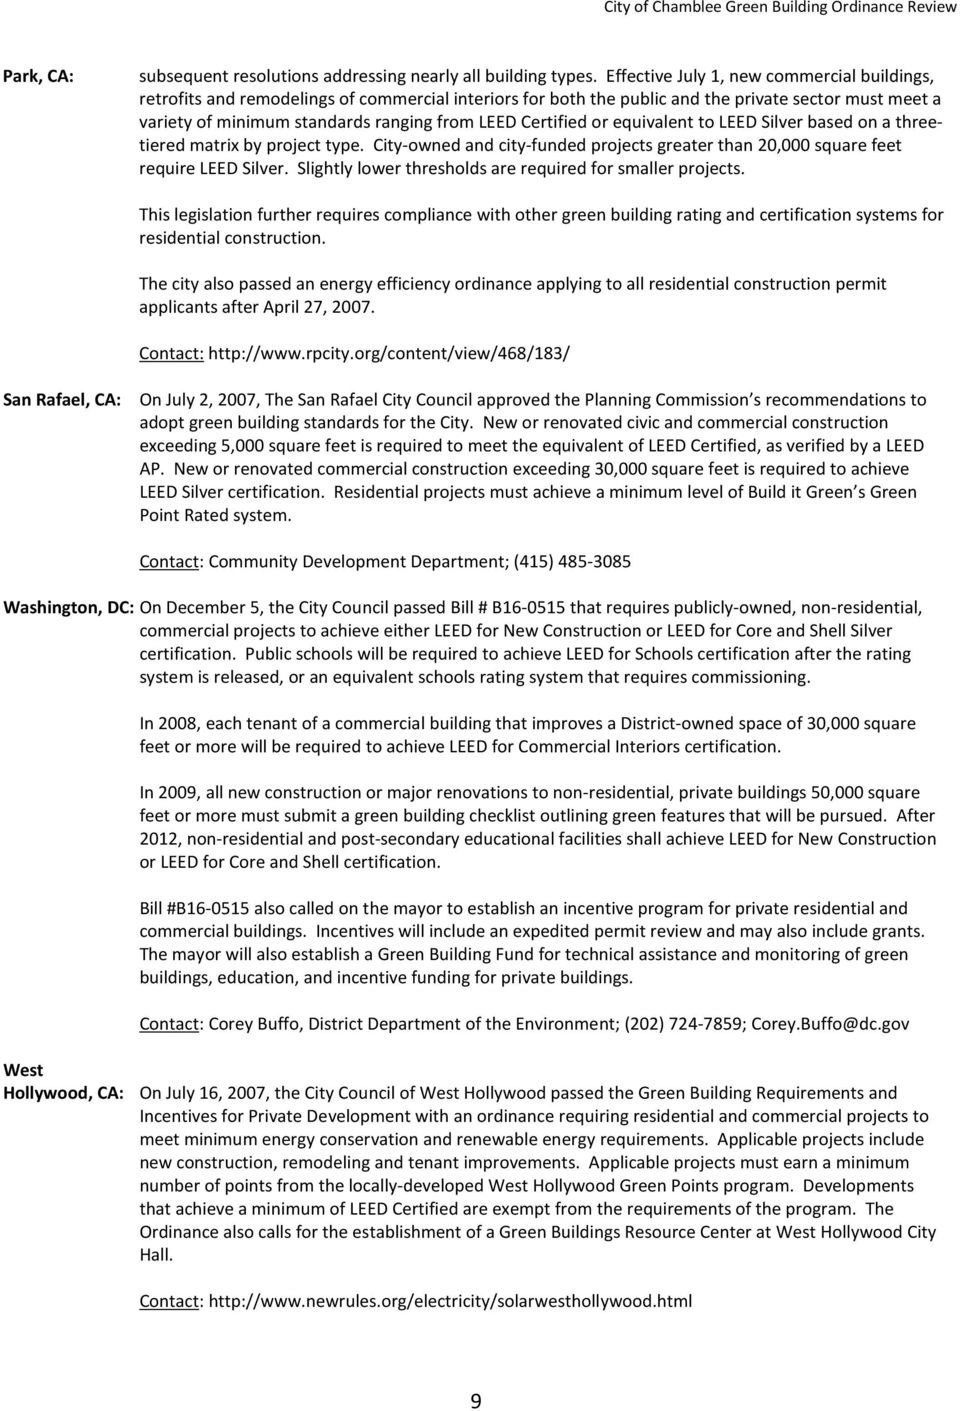 City Of Chamblee Green Building Ordinance Review Prepared By